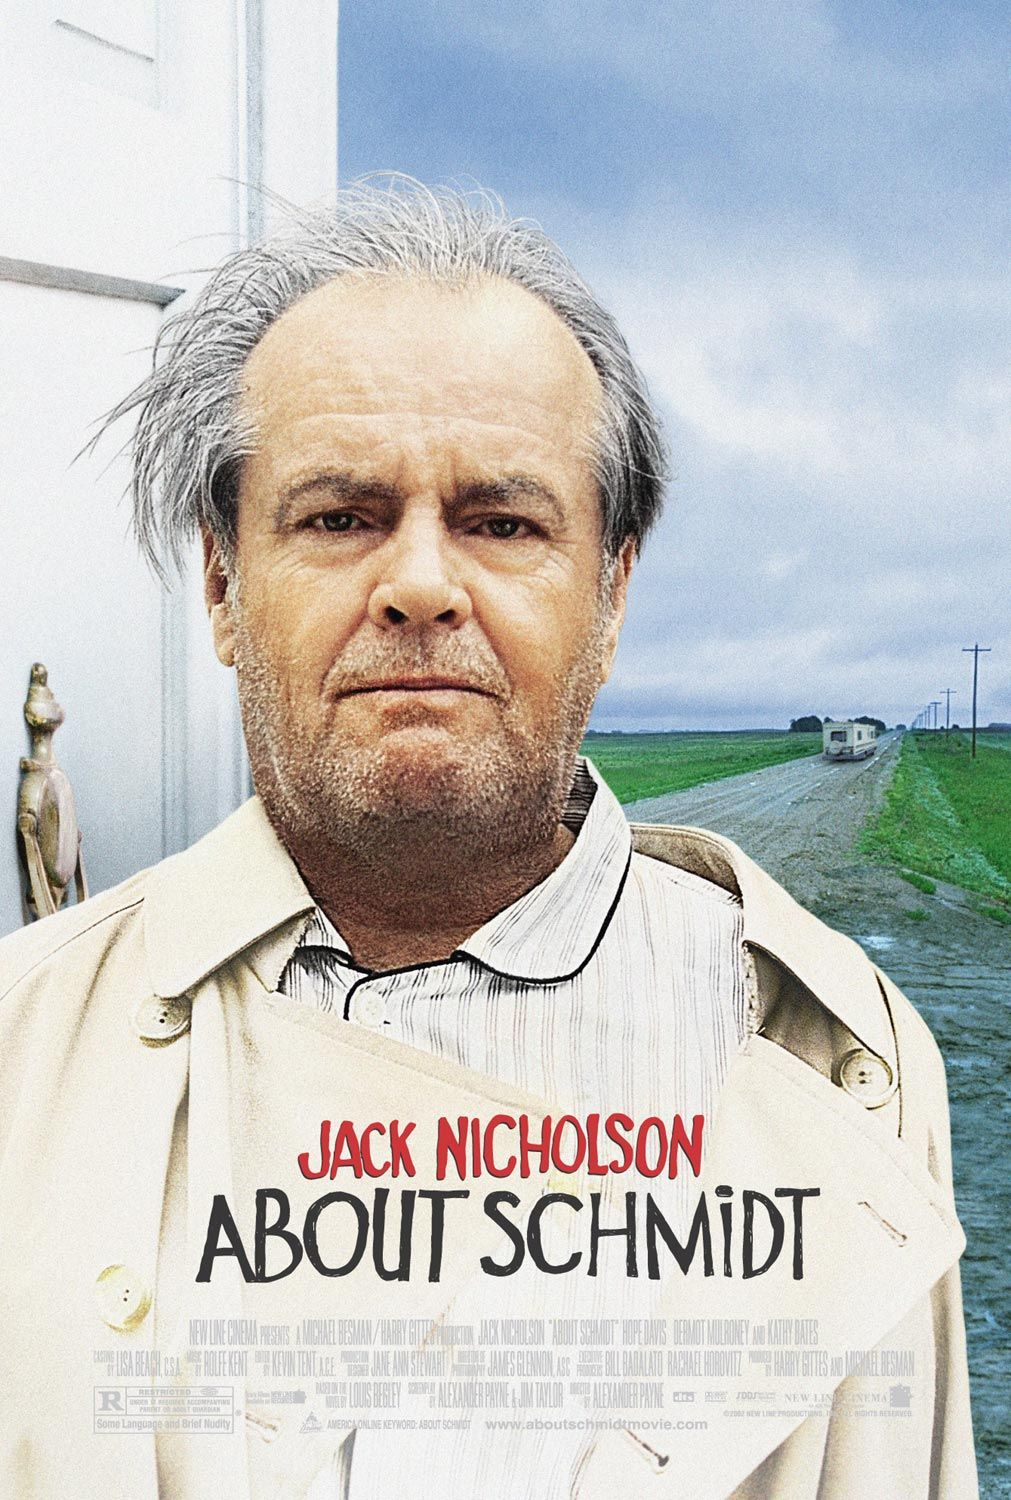 About Schmidt (2002) « Johannes' Film Reviews